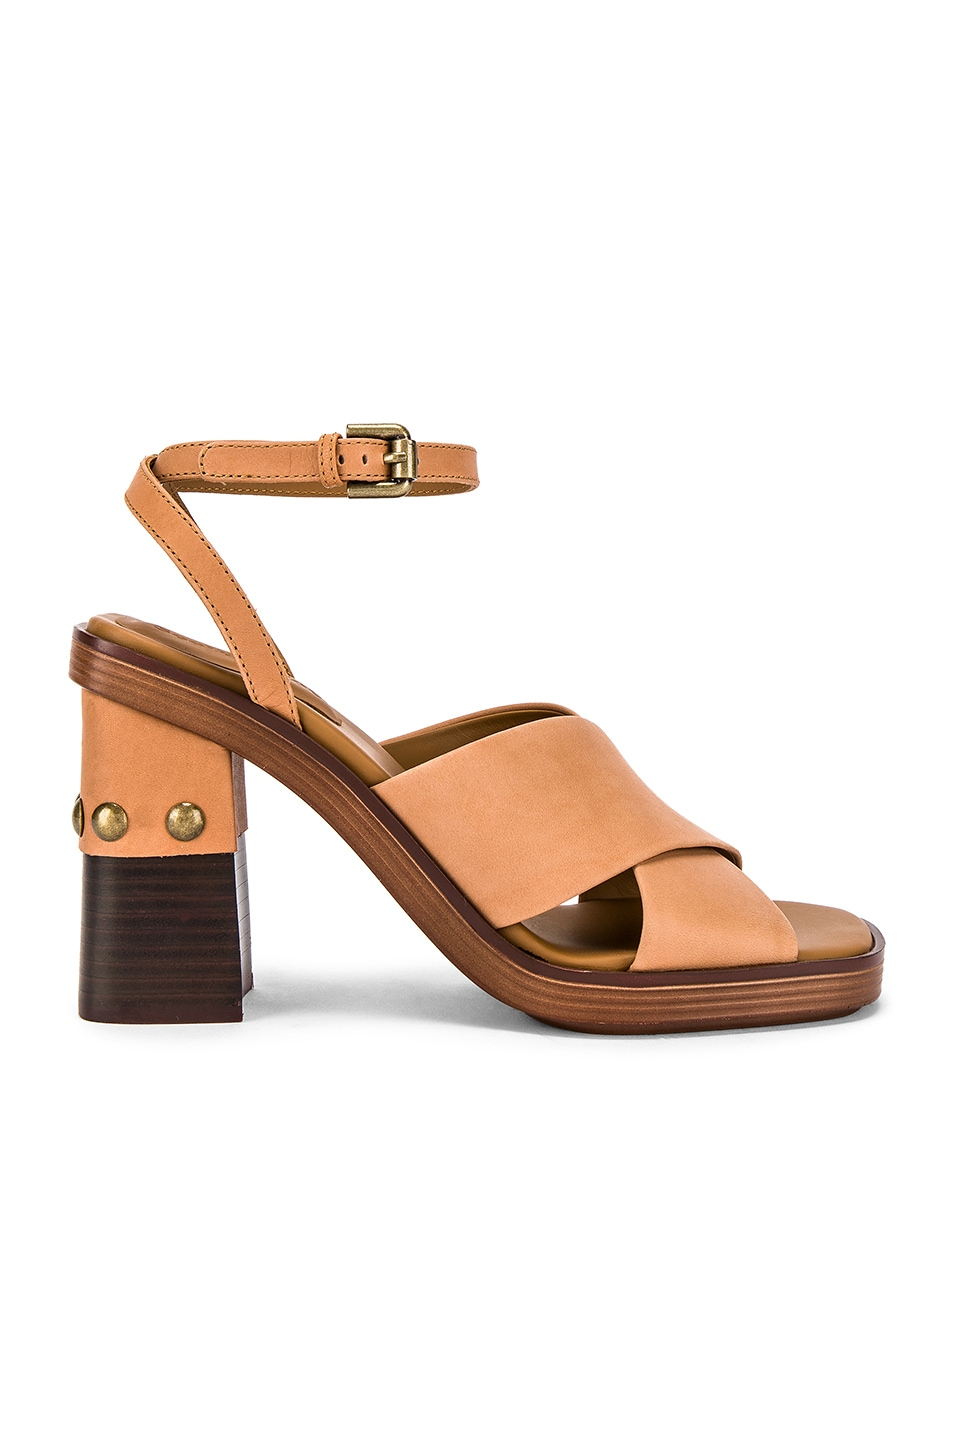 See By Chloe Haley Sandal in Sierra